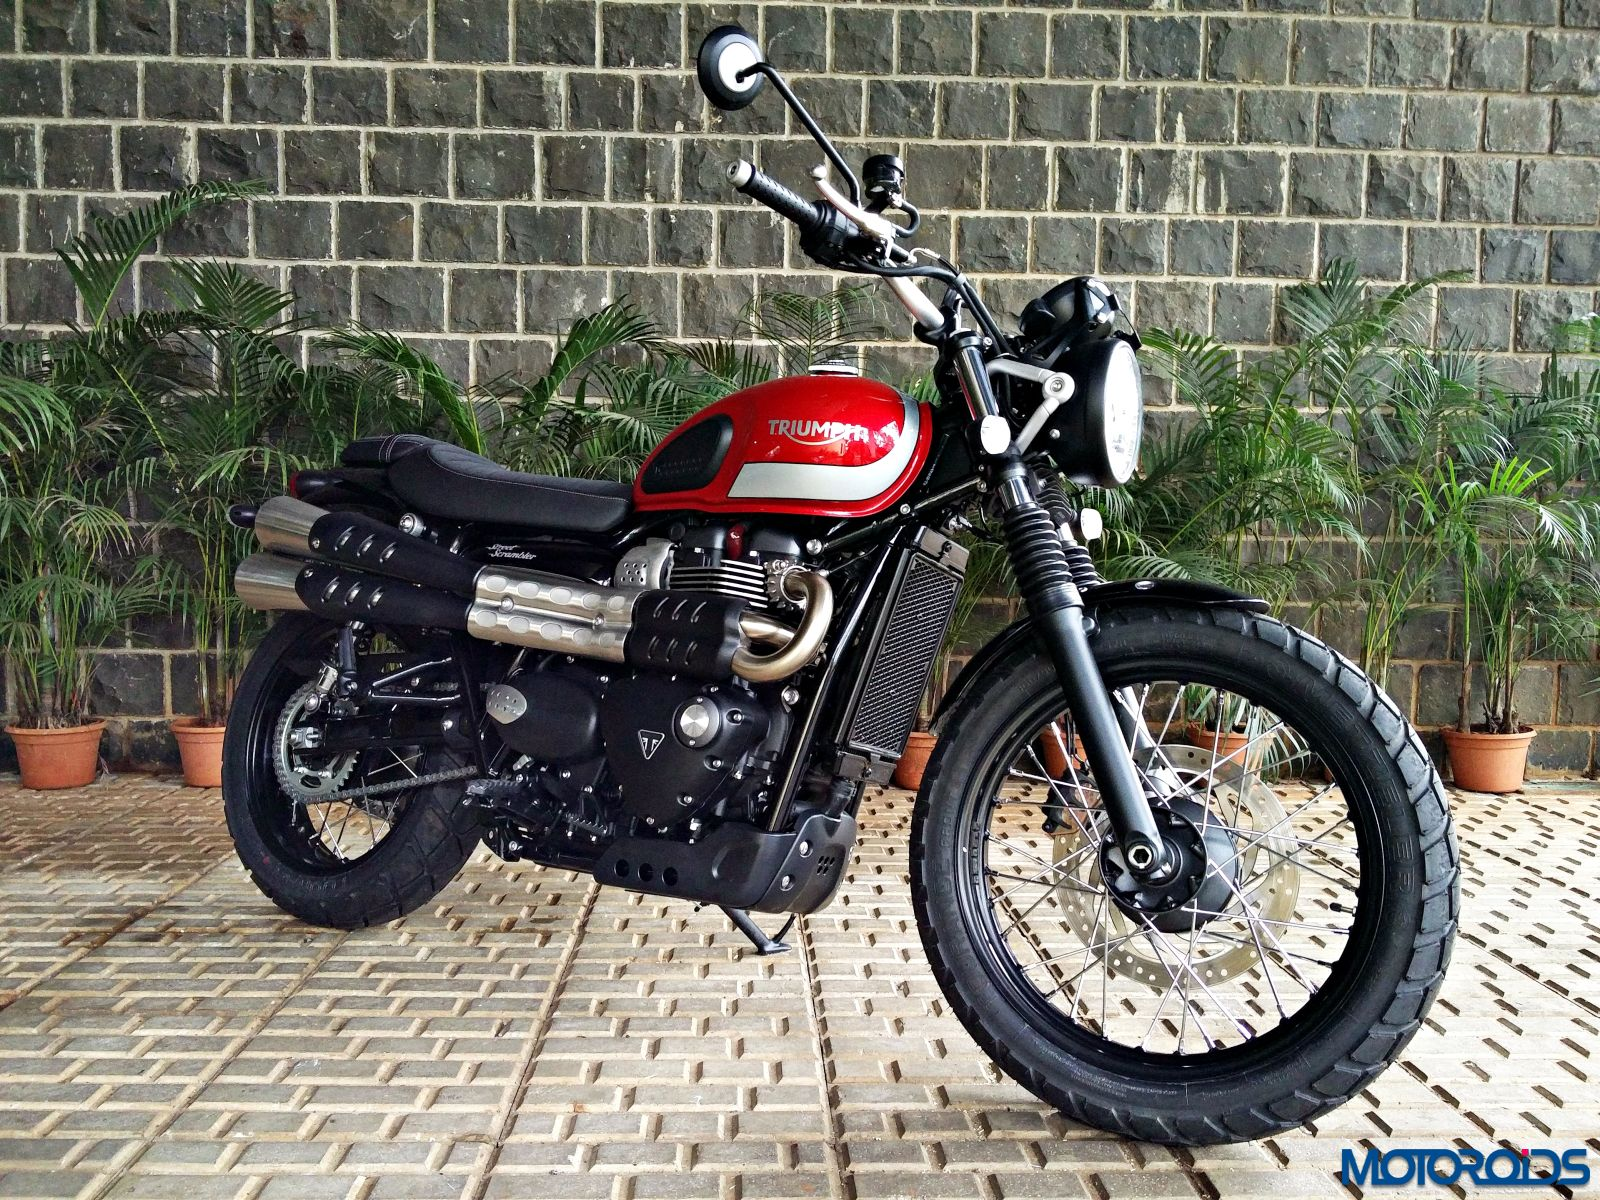 triumph street scrambler india review price specs mileage and image gallery motoroids. Black Bedroom Furniture Sets. Home Design Ideas